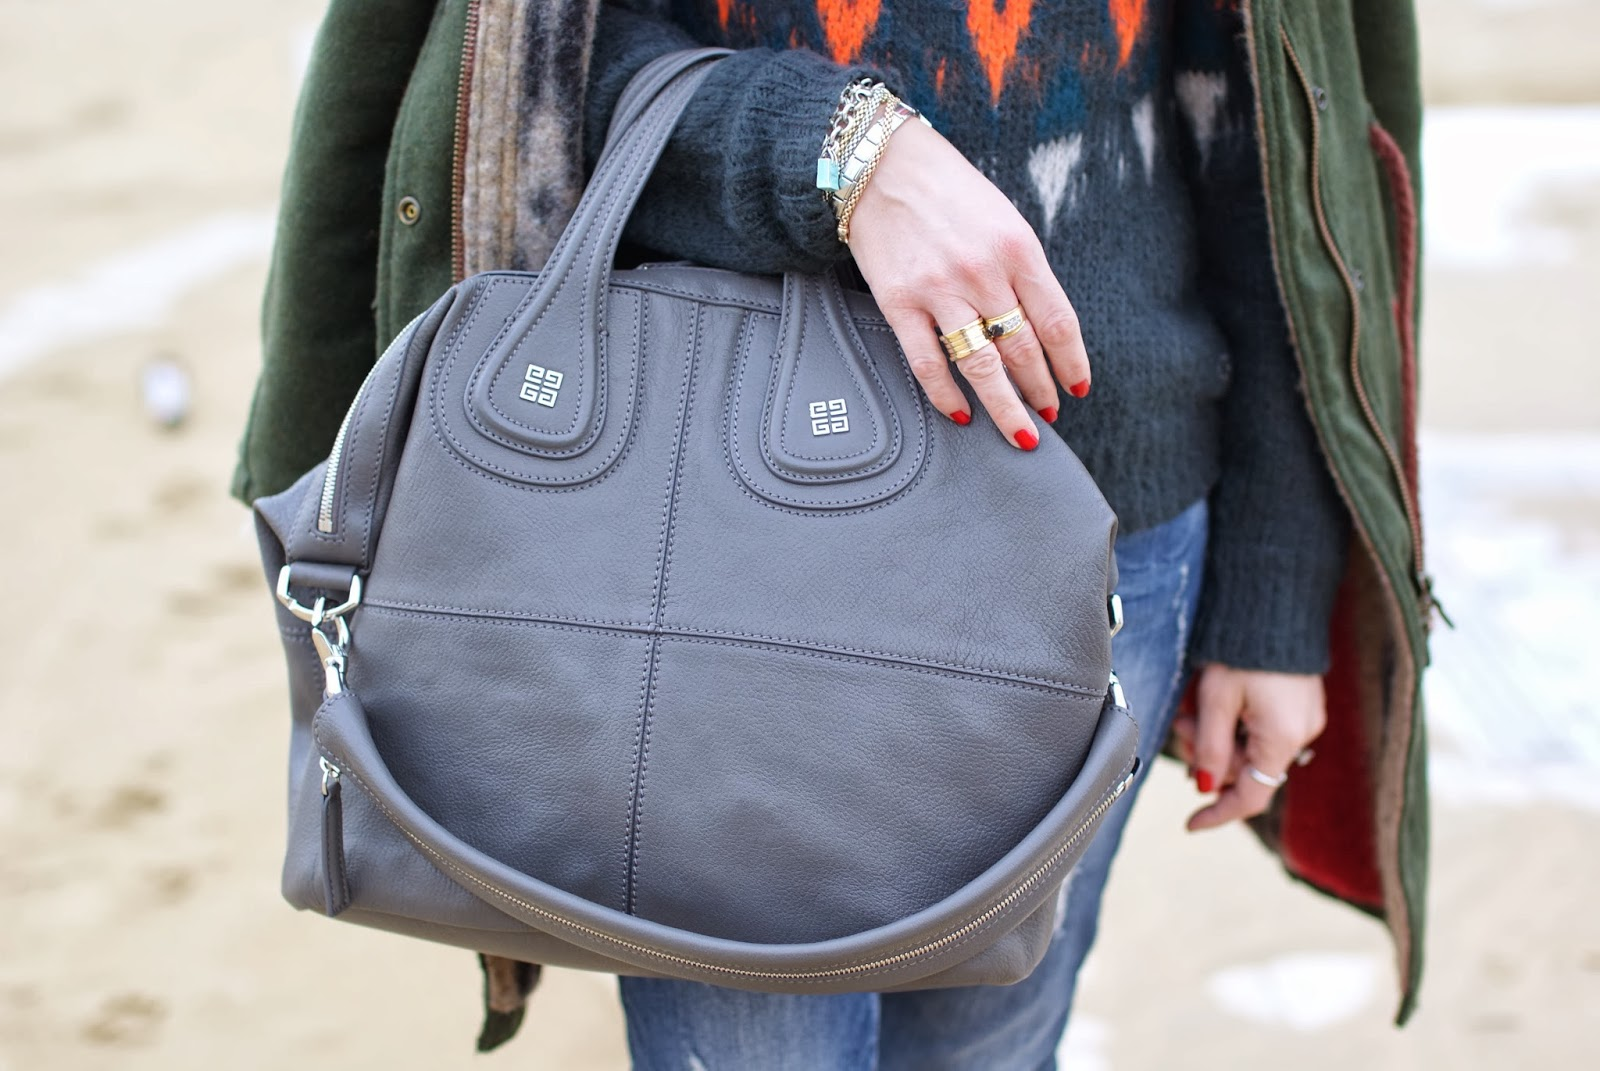 Grey Givenchy Nightingale bag, BVLGARI BZero ring, Fashion and Cookies, fashion blogger